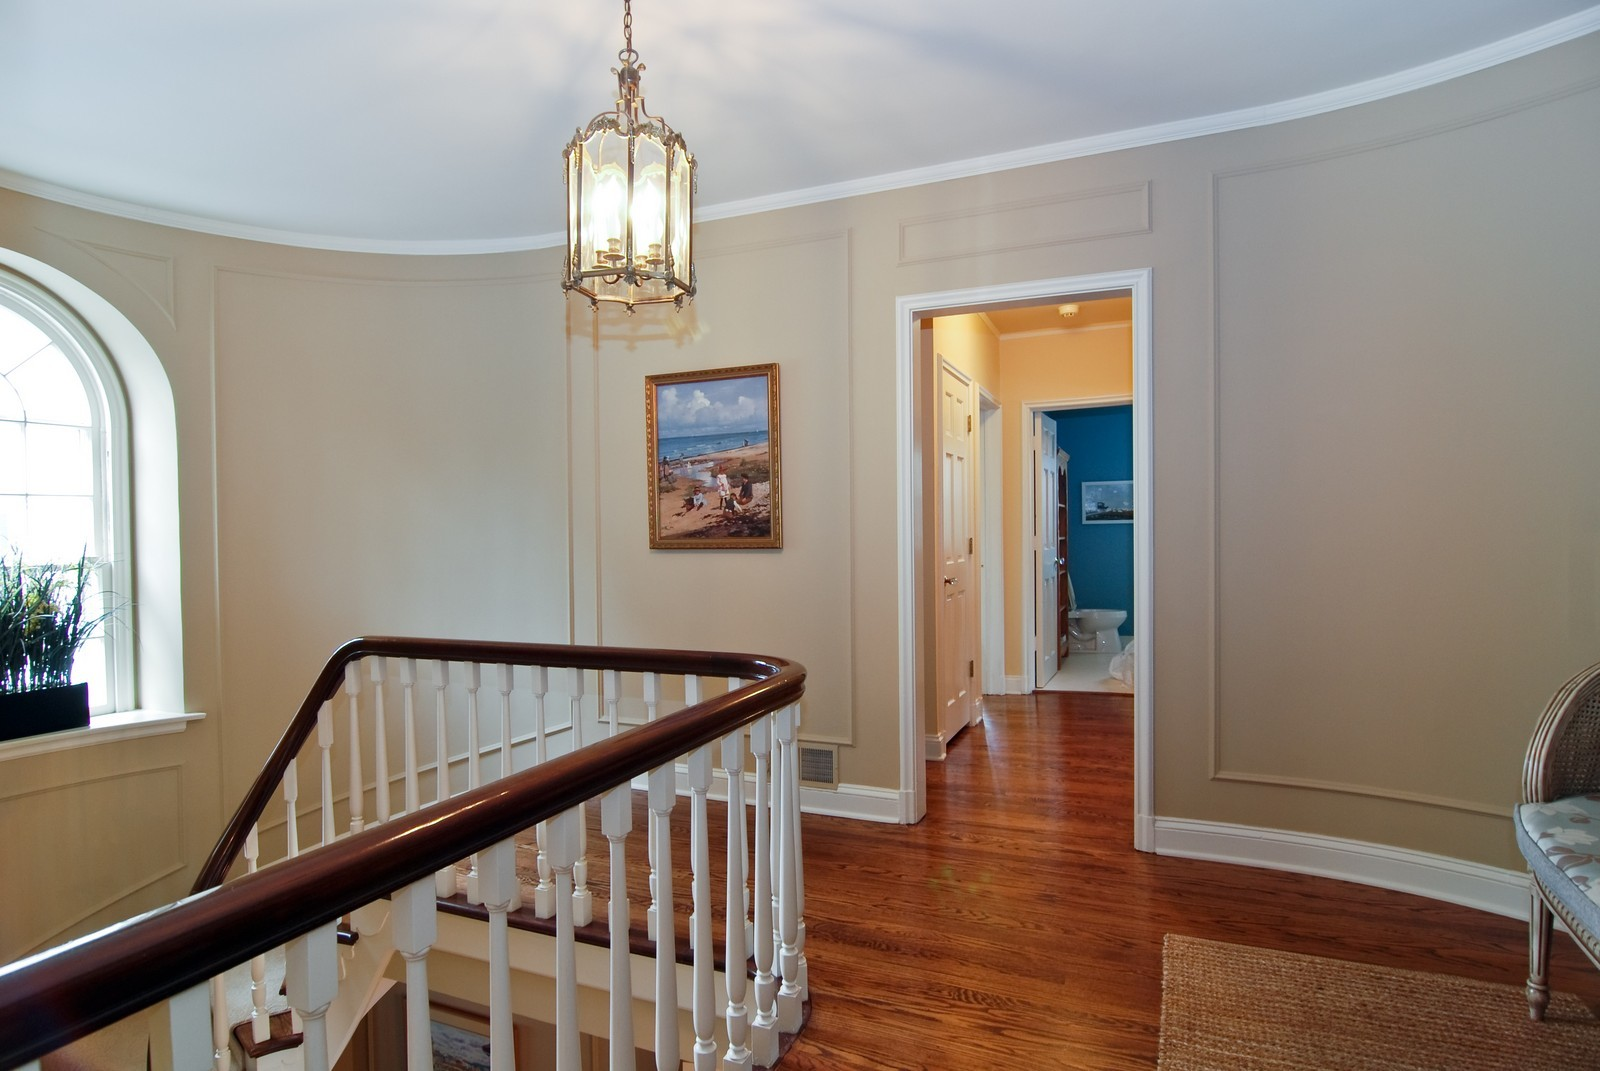 Real Estate Photography - 1532 Butterfield Road, Flossmoor, IL, 60422 - Second floor landing and palladian window.